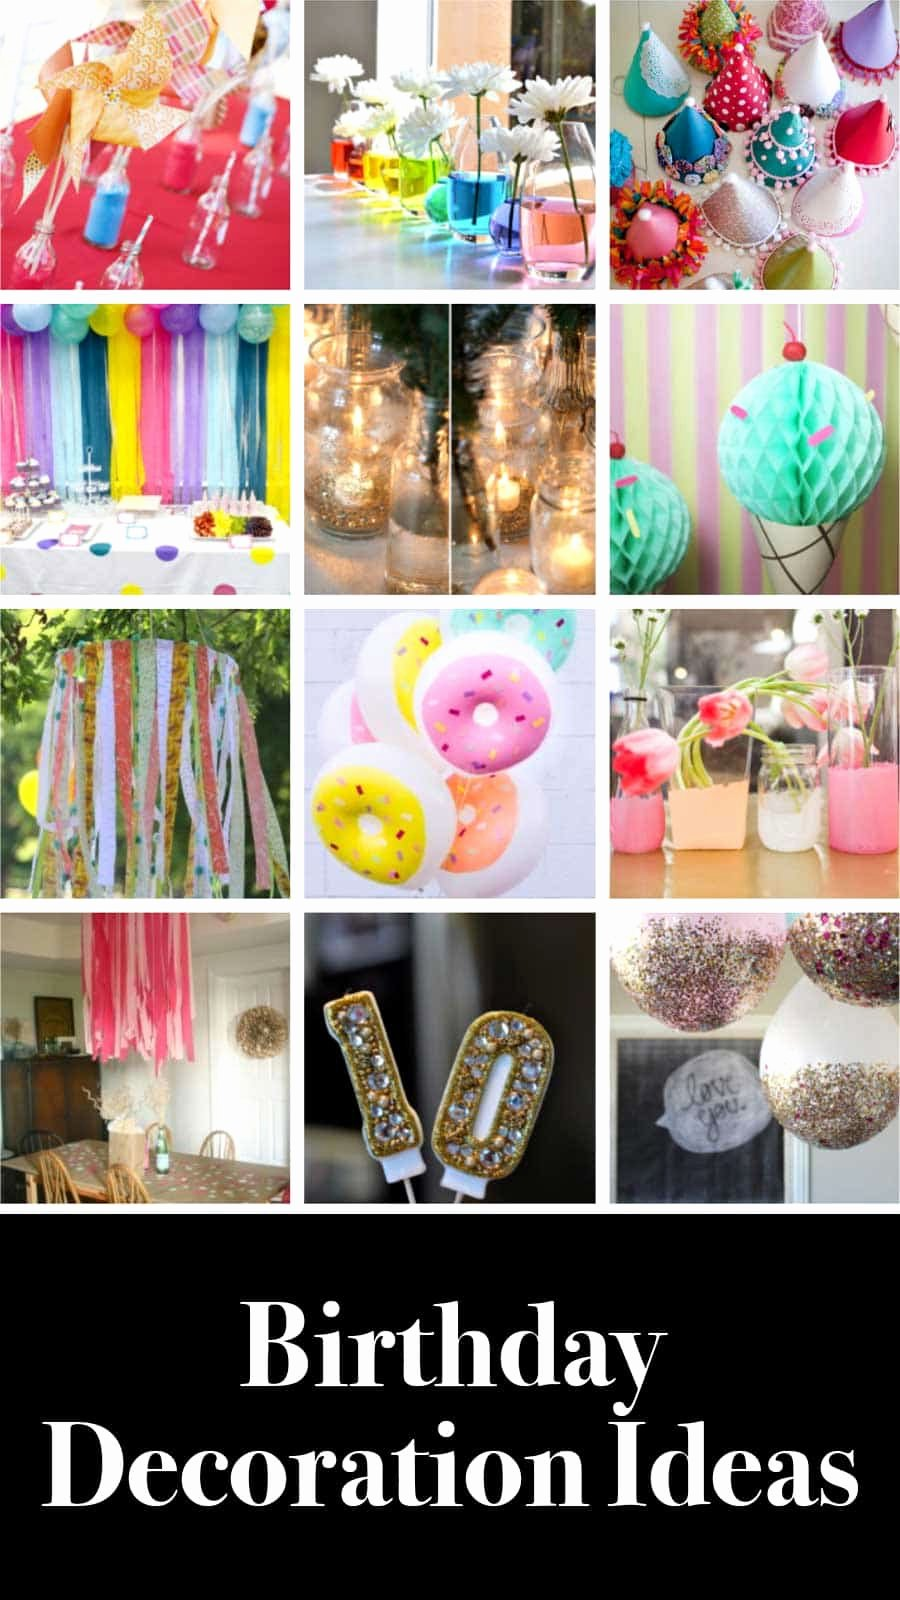 Sister Birthday Decoration Ideas Awesome 12 Easy Diy Birthday Decoration Ideas 2020